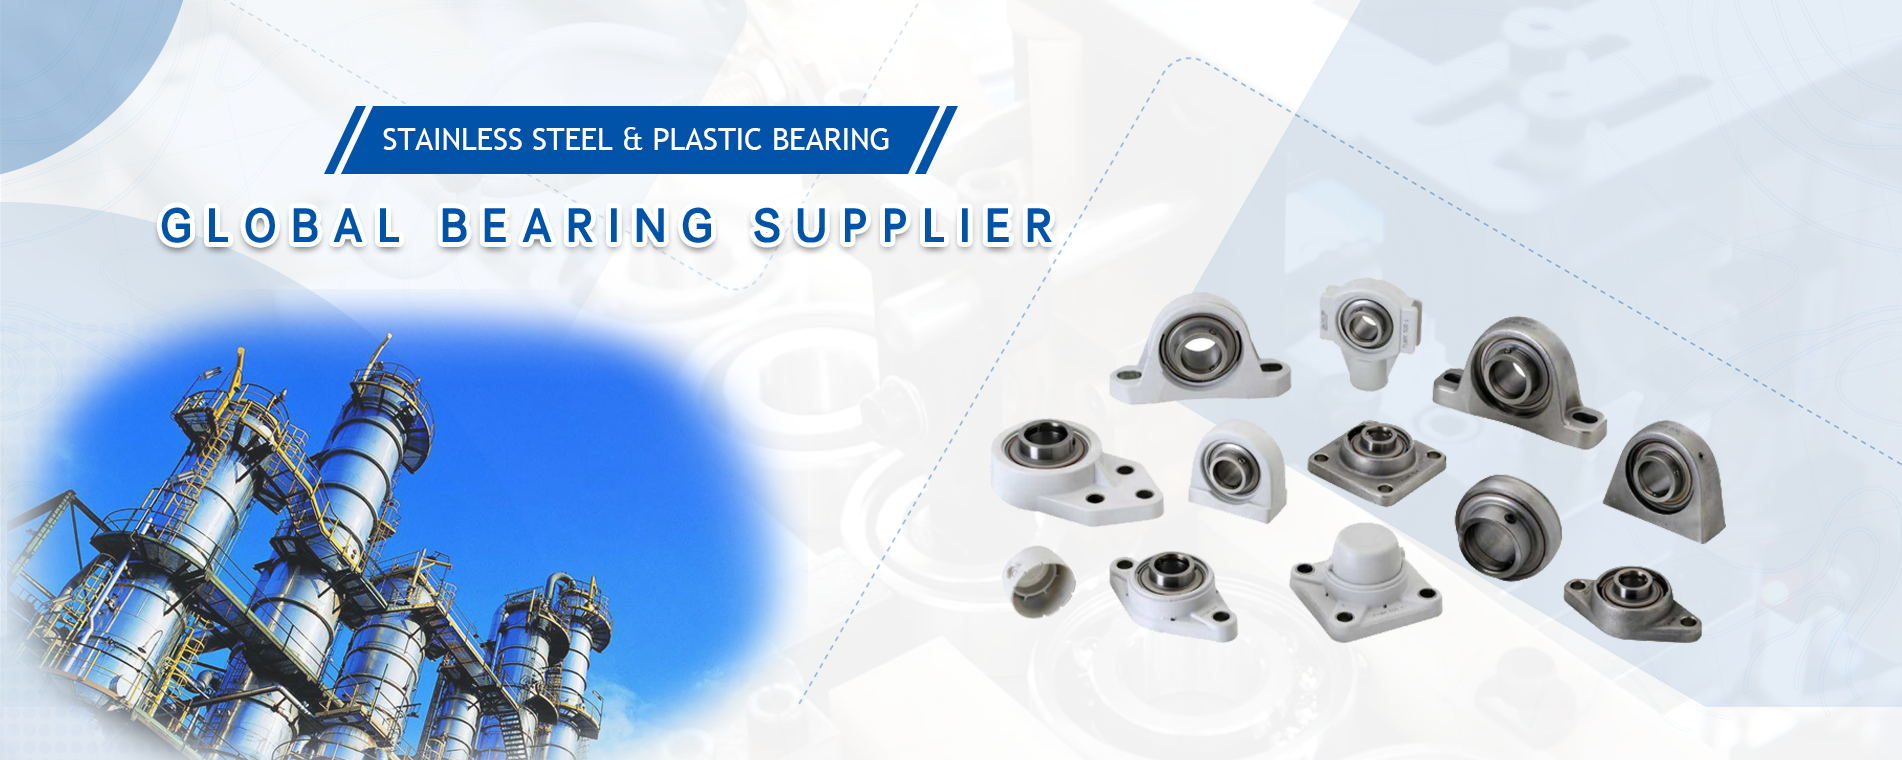 Stainless steel & plastic bearing